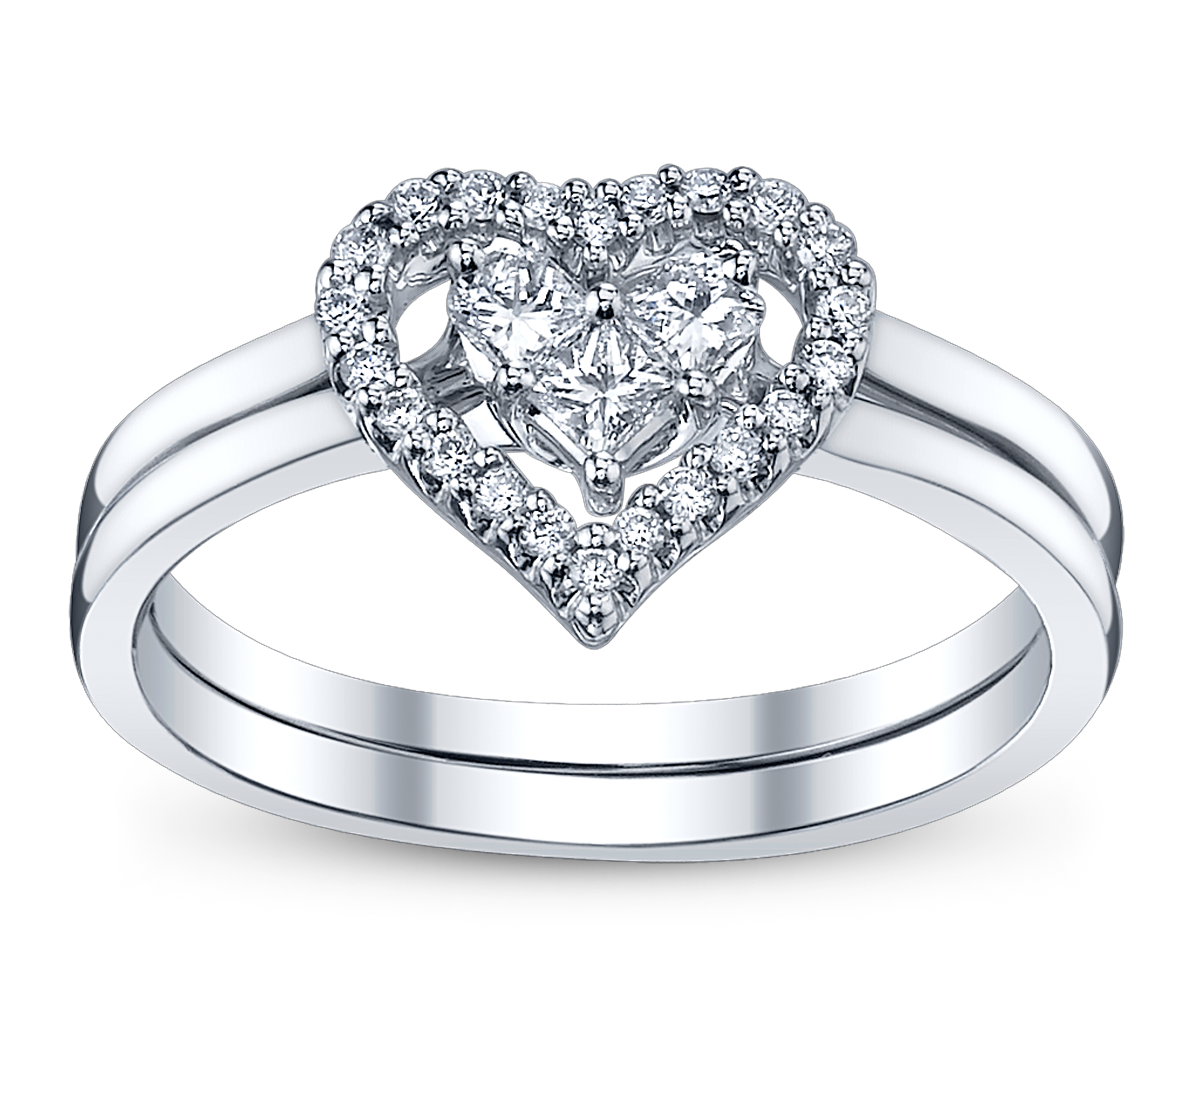 Diamond band png. Wedding ring images free